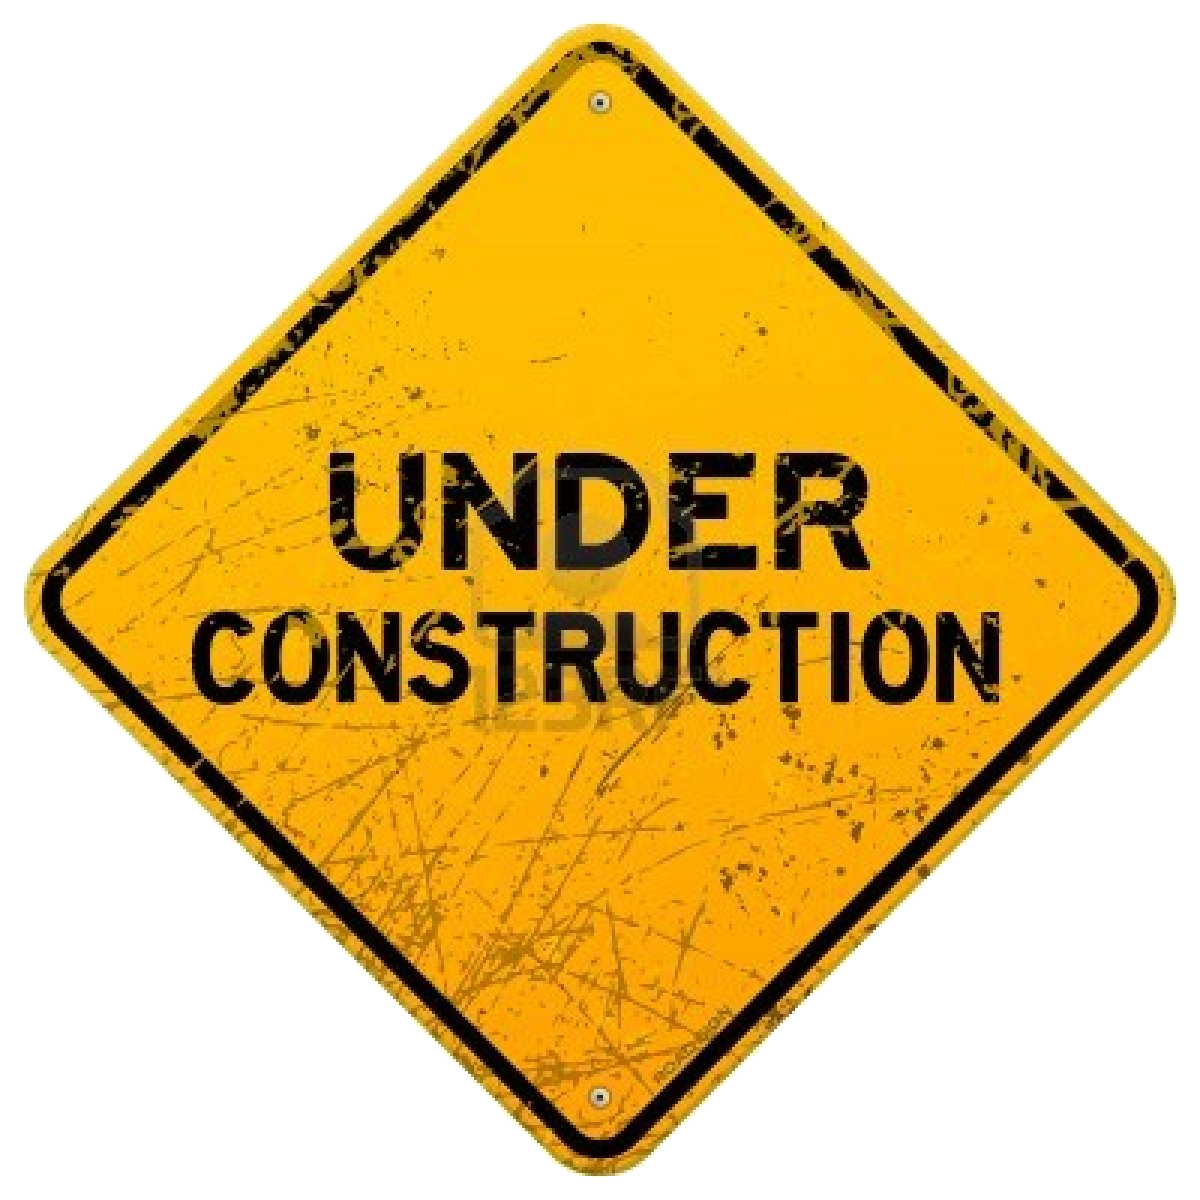 Clipart site en construction clip art black and white library Under Construction PNG HD Free Transparent Under Construction HD.PNG ... clip art black and white library